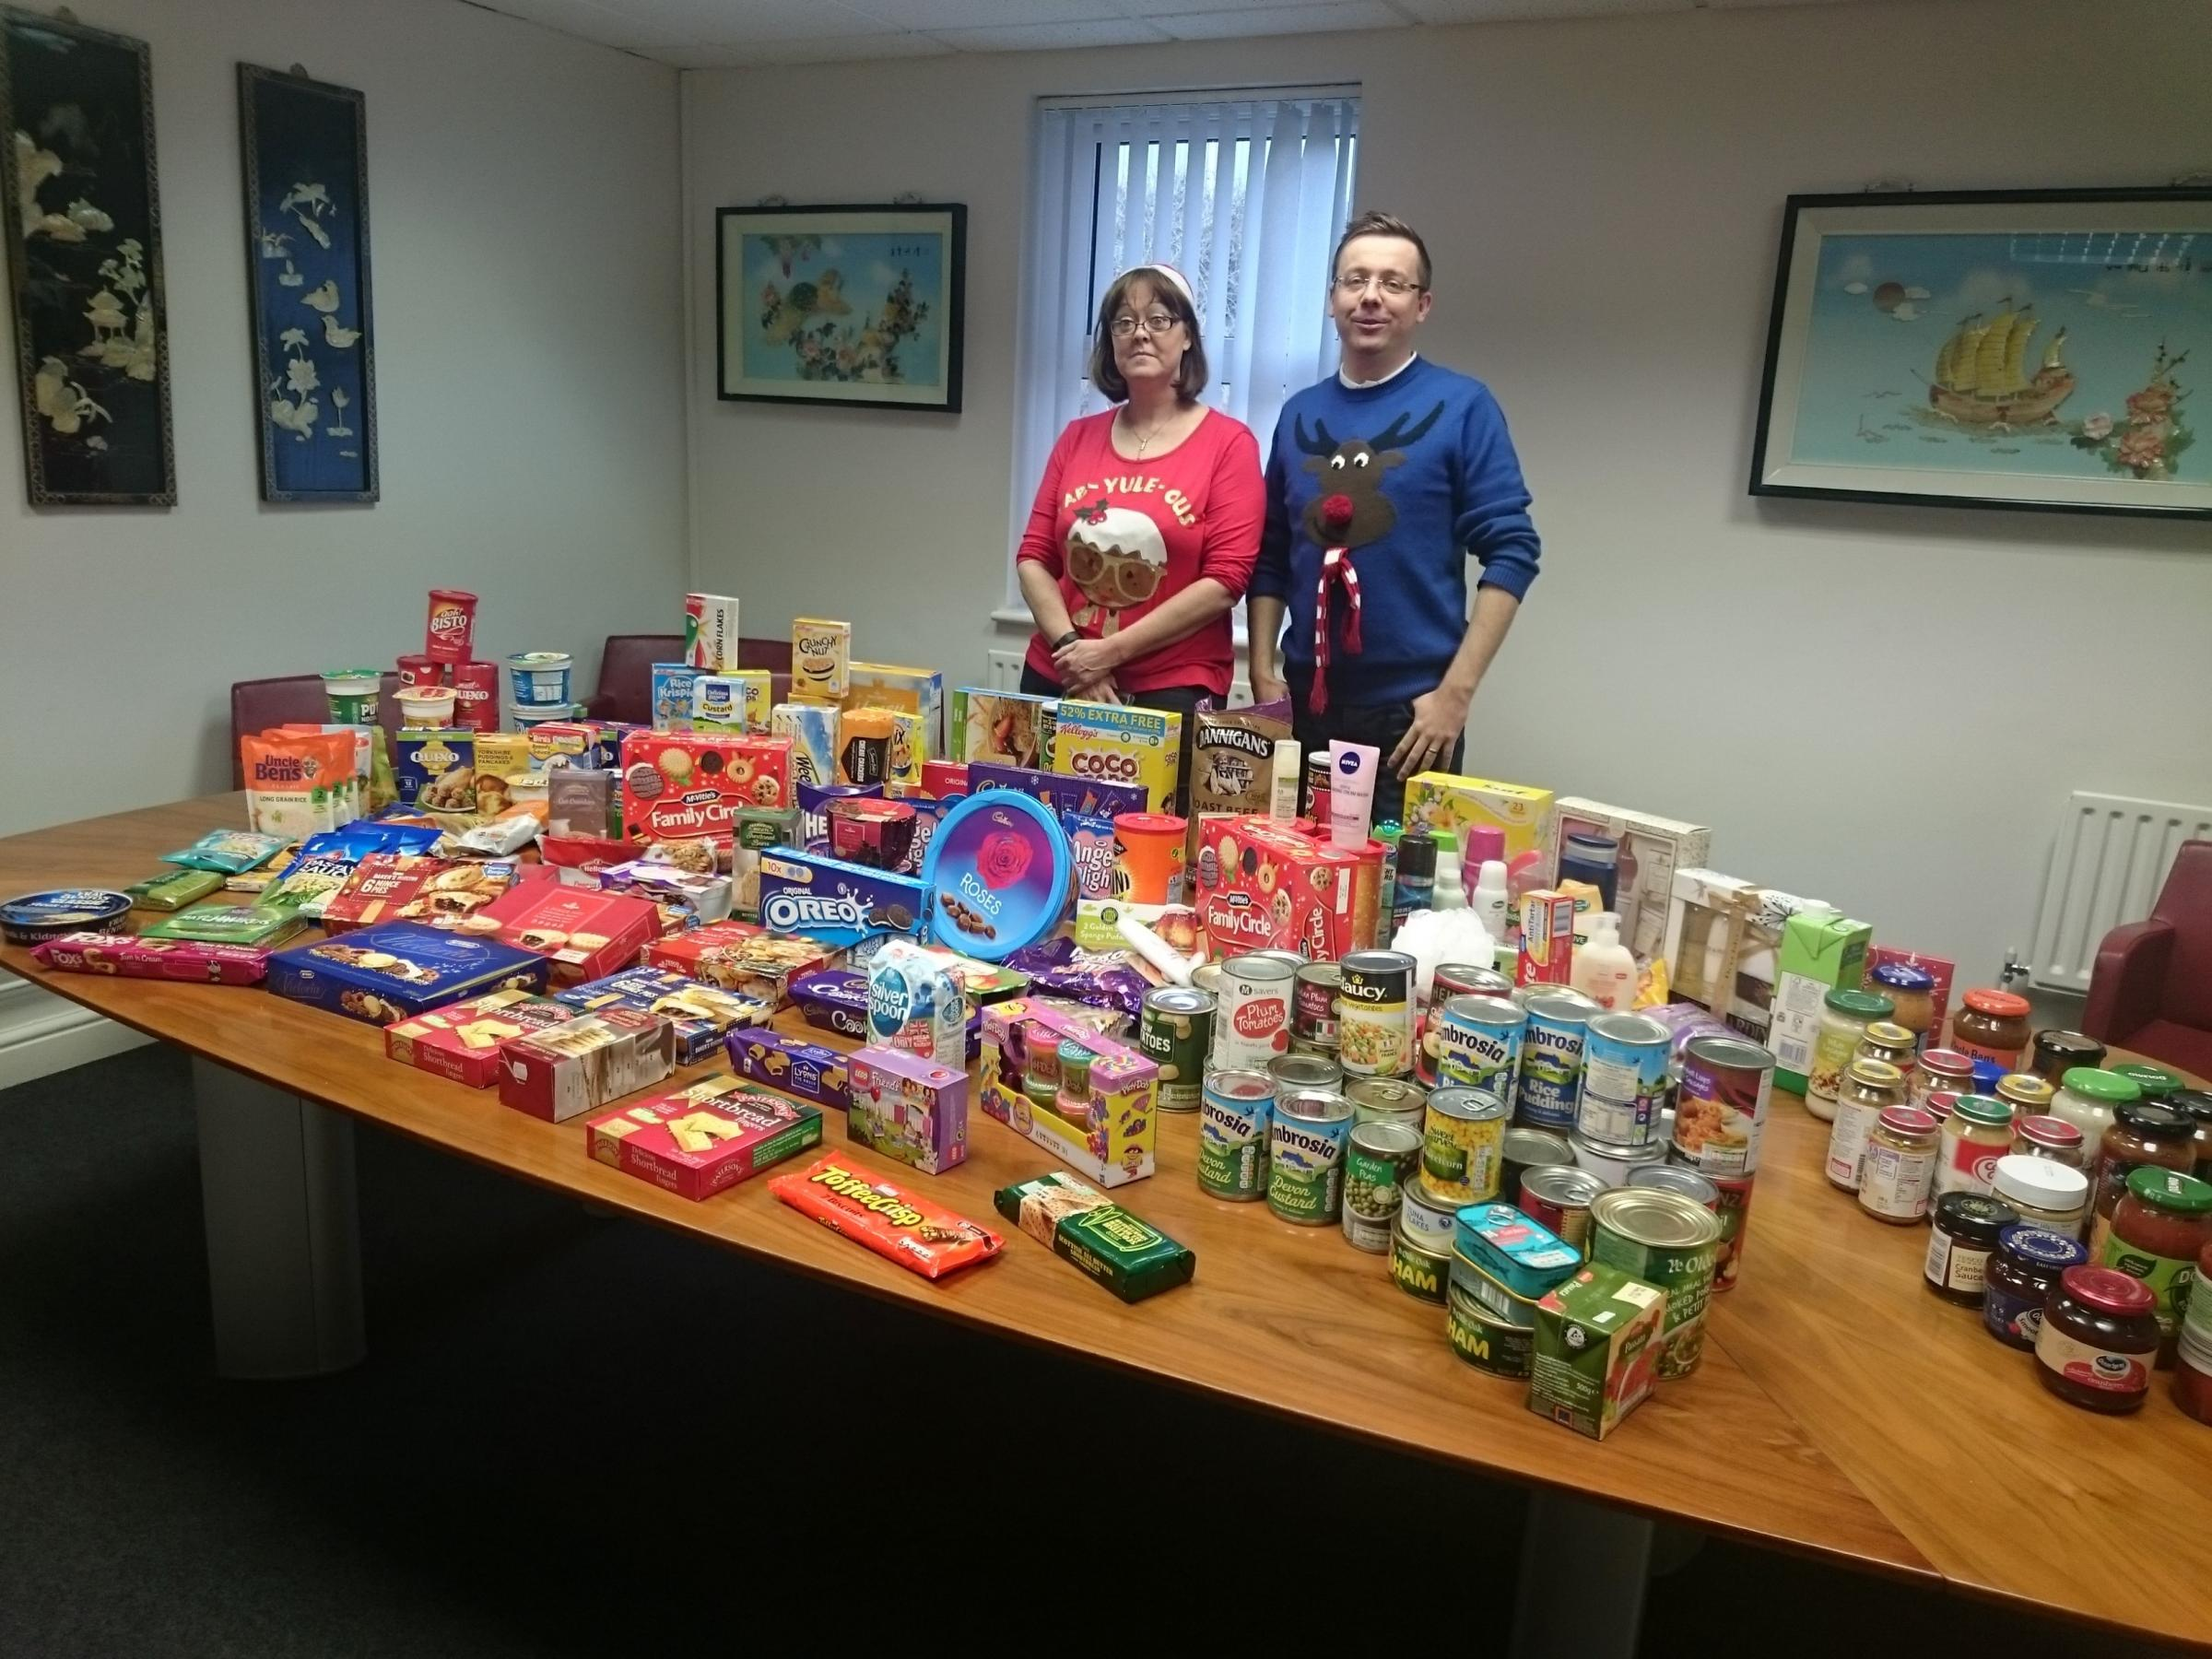 DONATIONS: Secretarial services manager Claire Selman and Alex Dyer, partner at Ormerod Rutter with items donated to the food bank